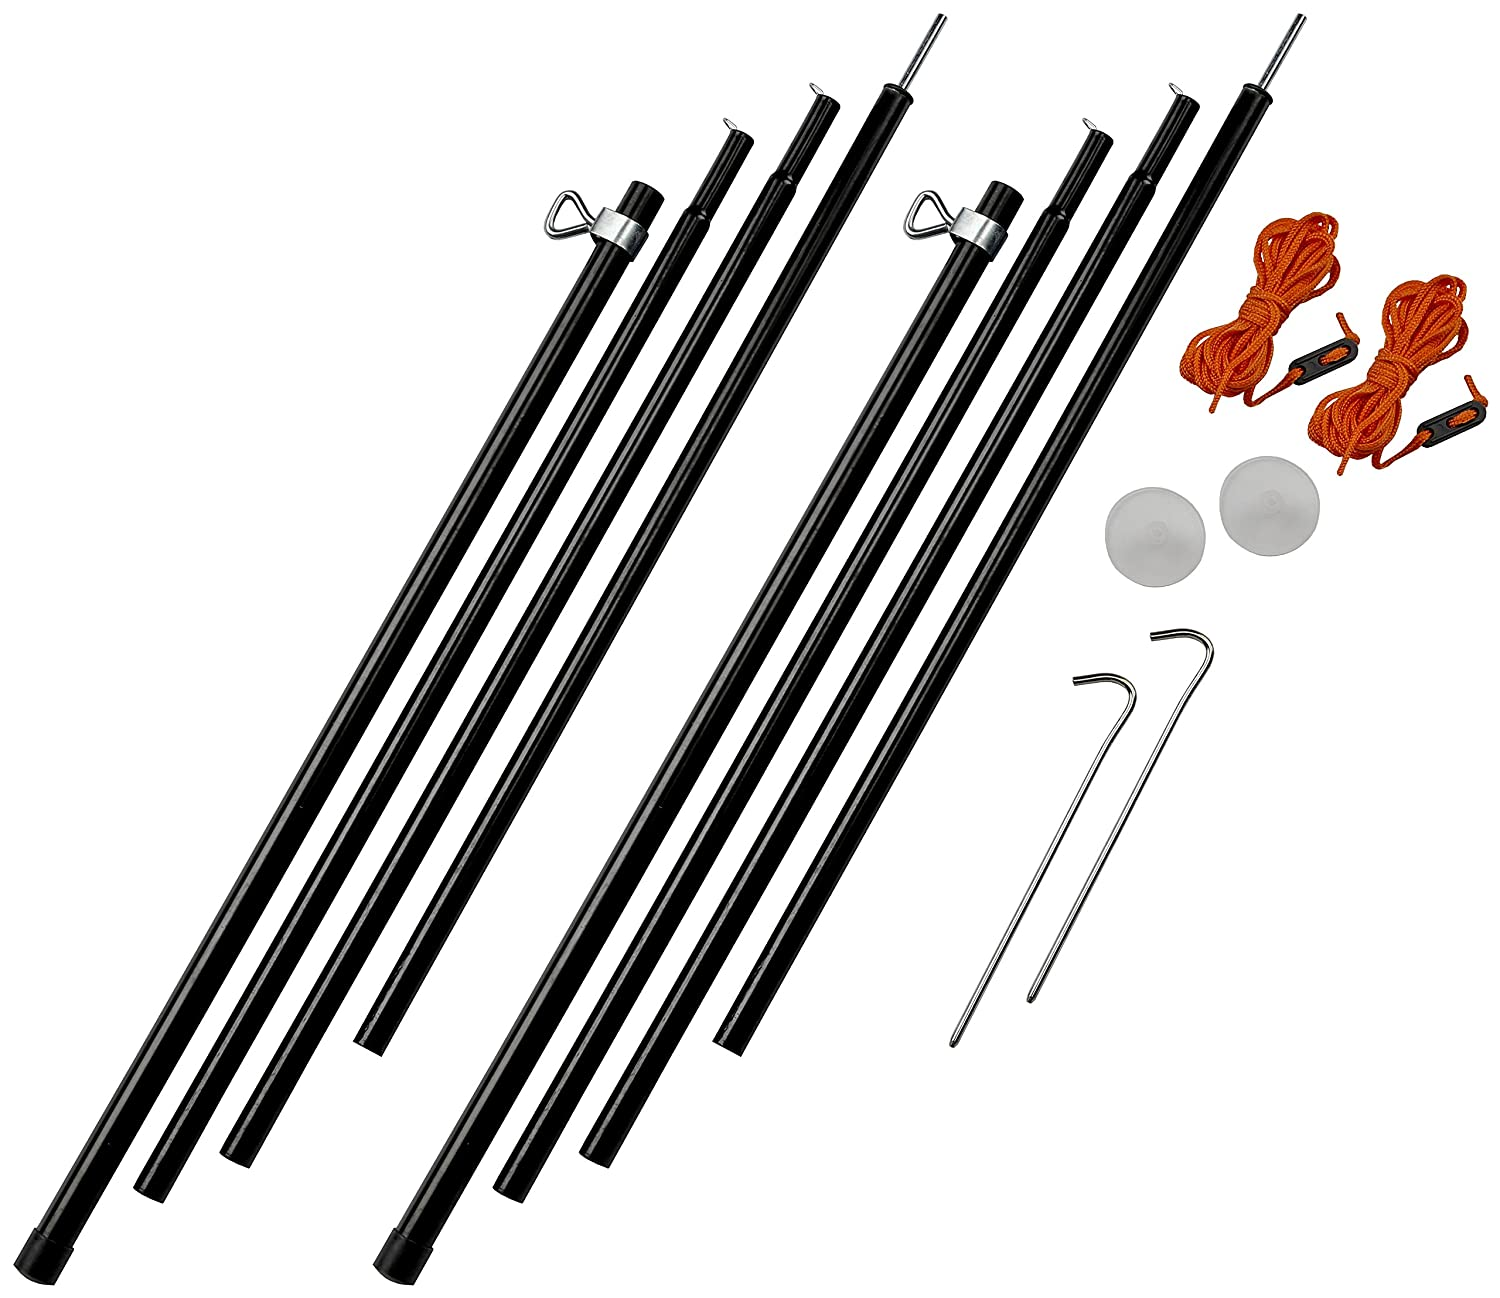 Vango Outdoor Adjustable Pole Set available in Black - Size 180 - 220 cm Amazon.co.uk Sports u0026 Outdoors  sc 1 st  Amazon UK & Vango Outdoor Adjustable Pole Set available in Black - Size 180 ...